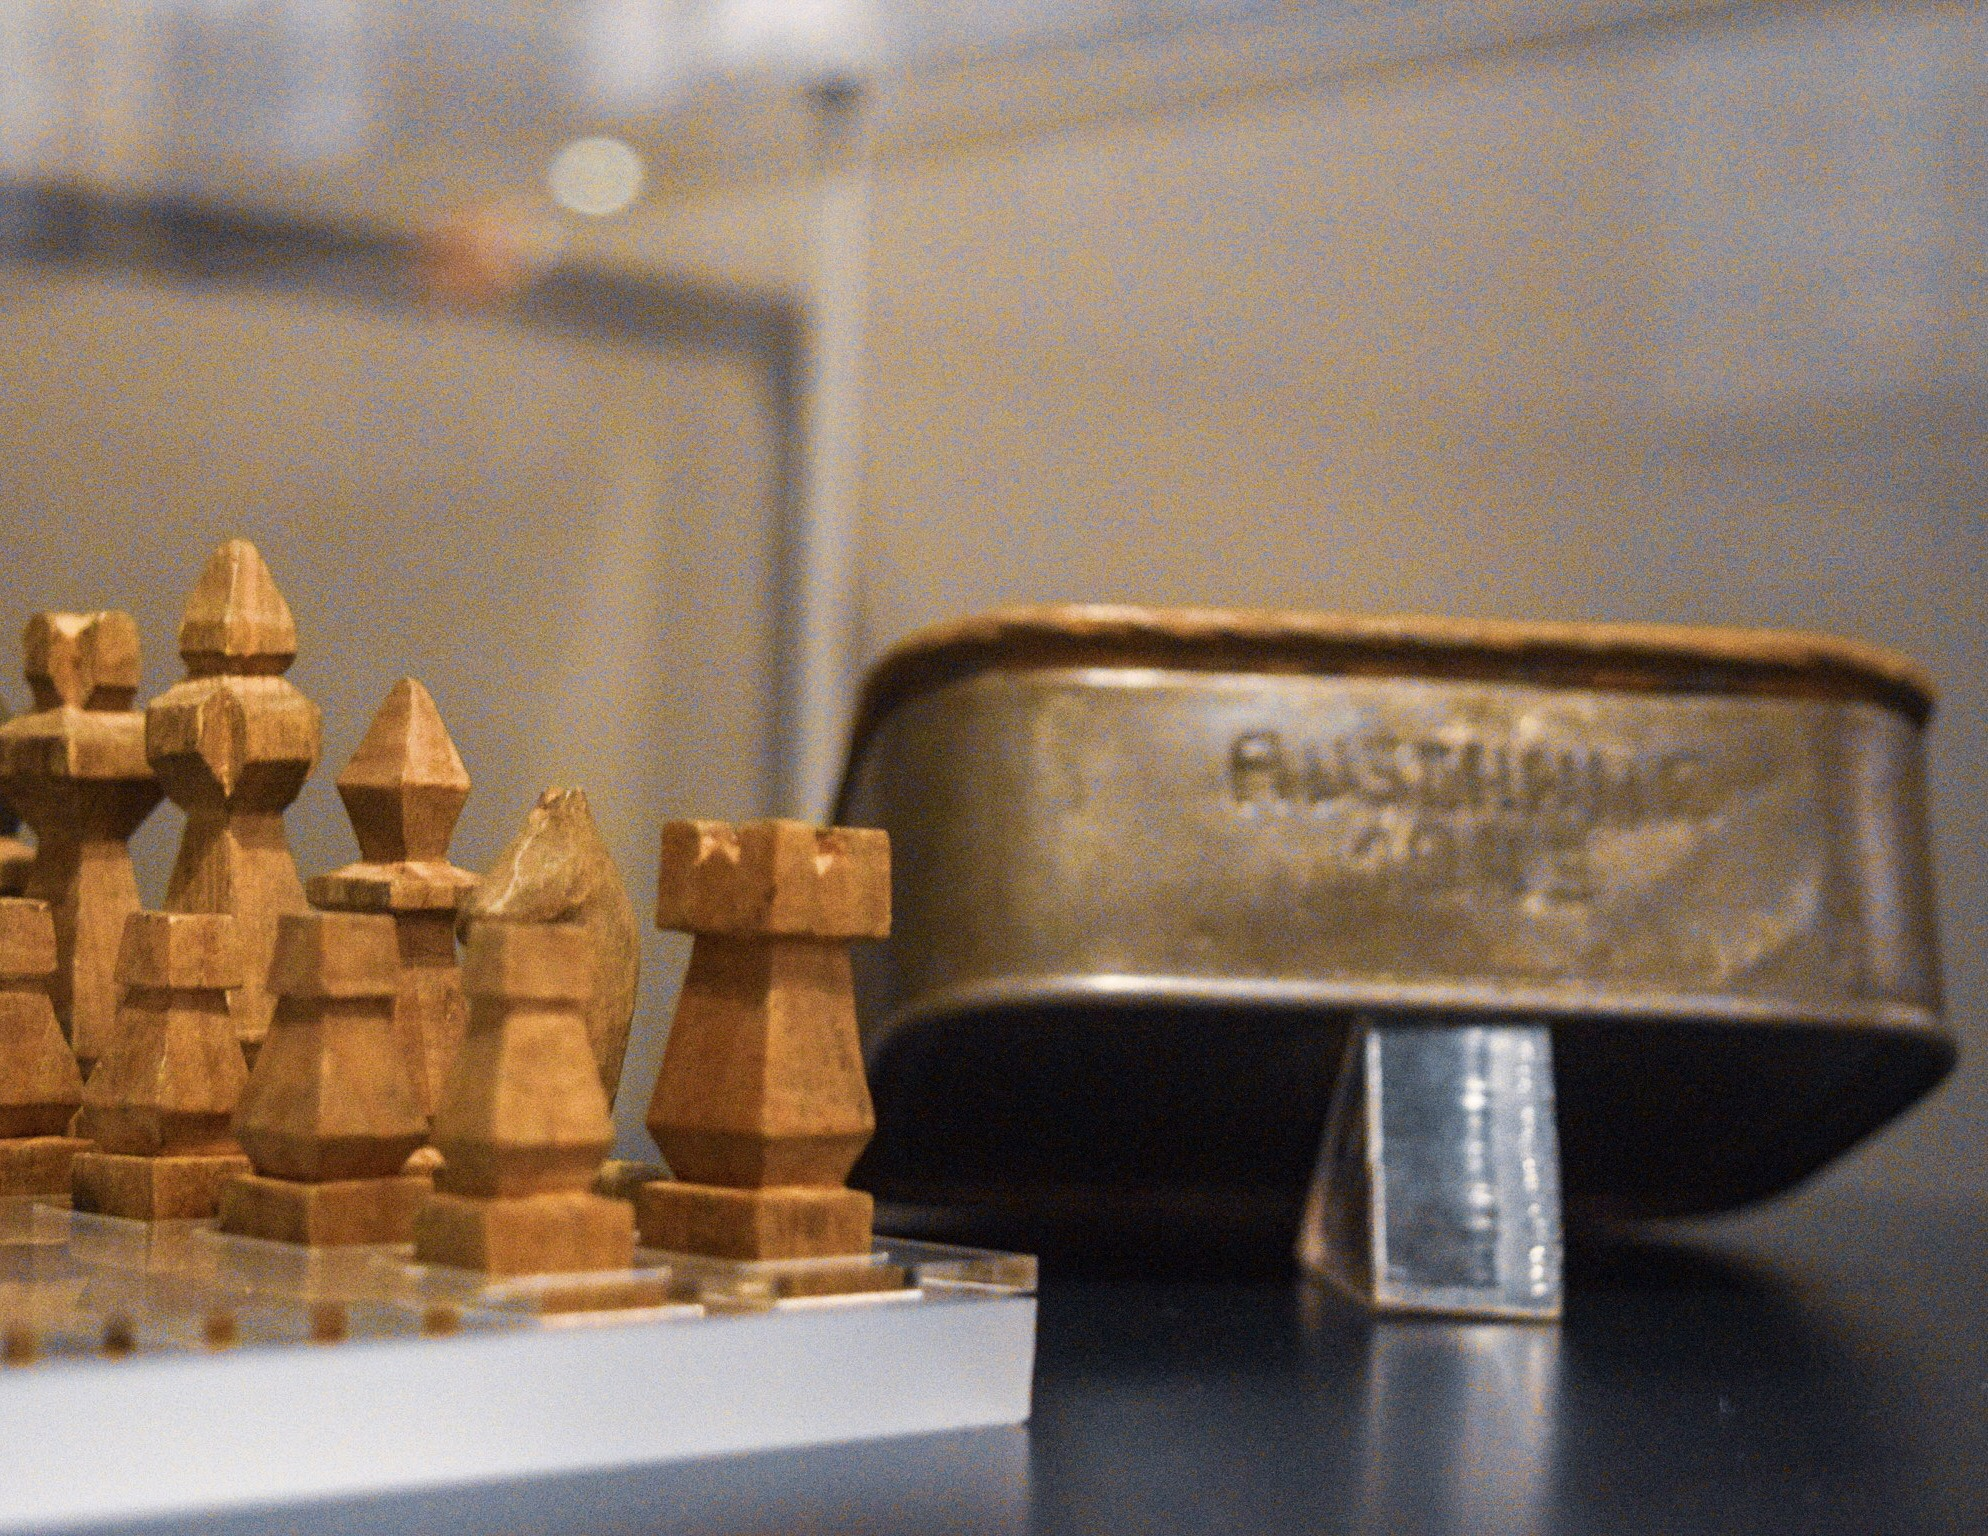 """Prisoner handmade chess set and sardine can case, with the word """"Auschwitz"""" carved into it."""